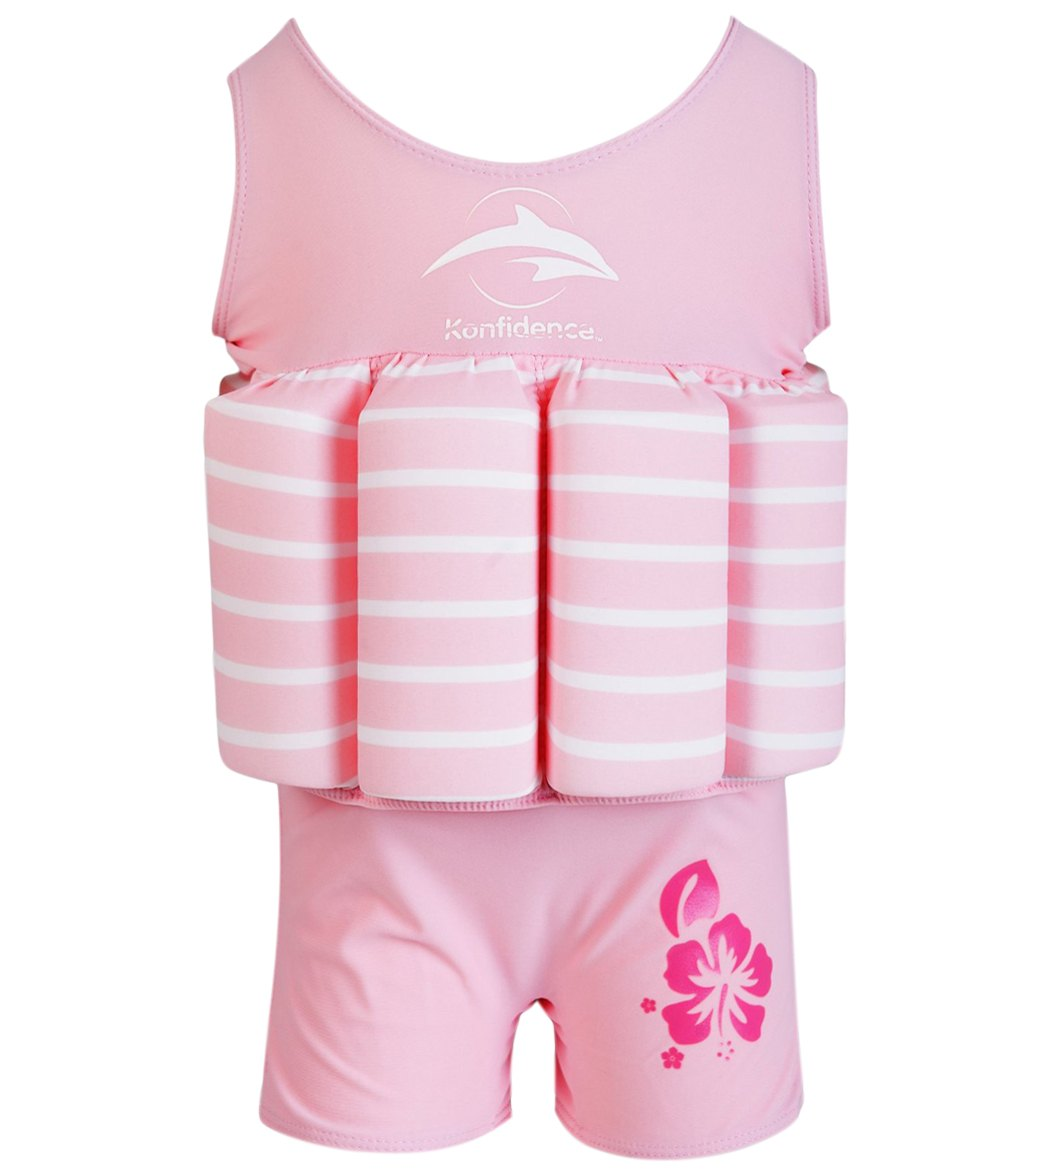 4aafe741 Konfidence Floatsuit (1-5 Years) at SwimOutlet.com